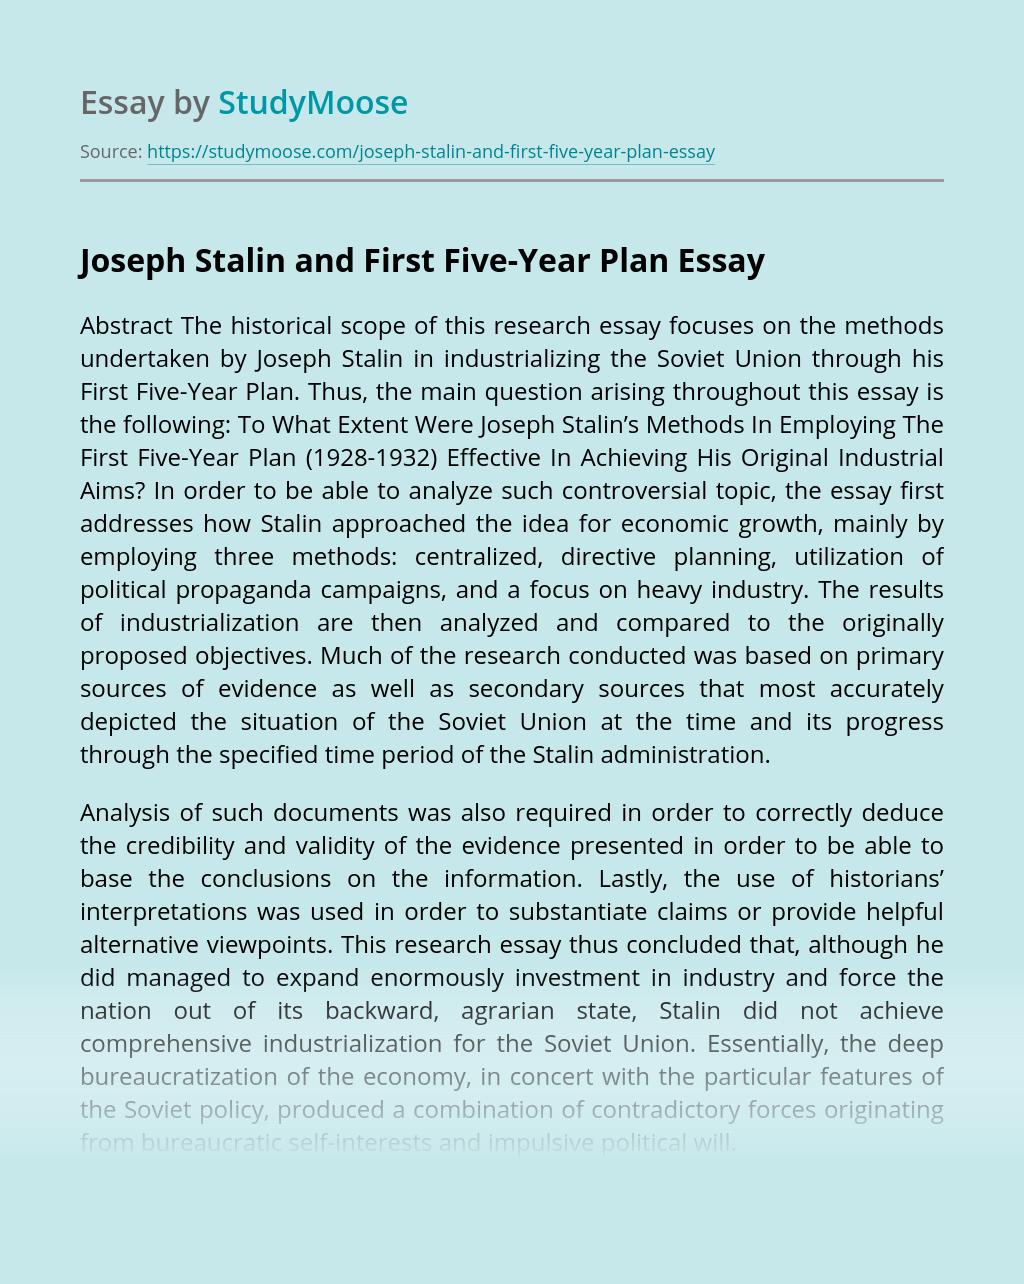 Joseph Stalin and First Five-Year Plan